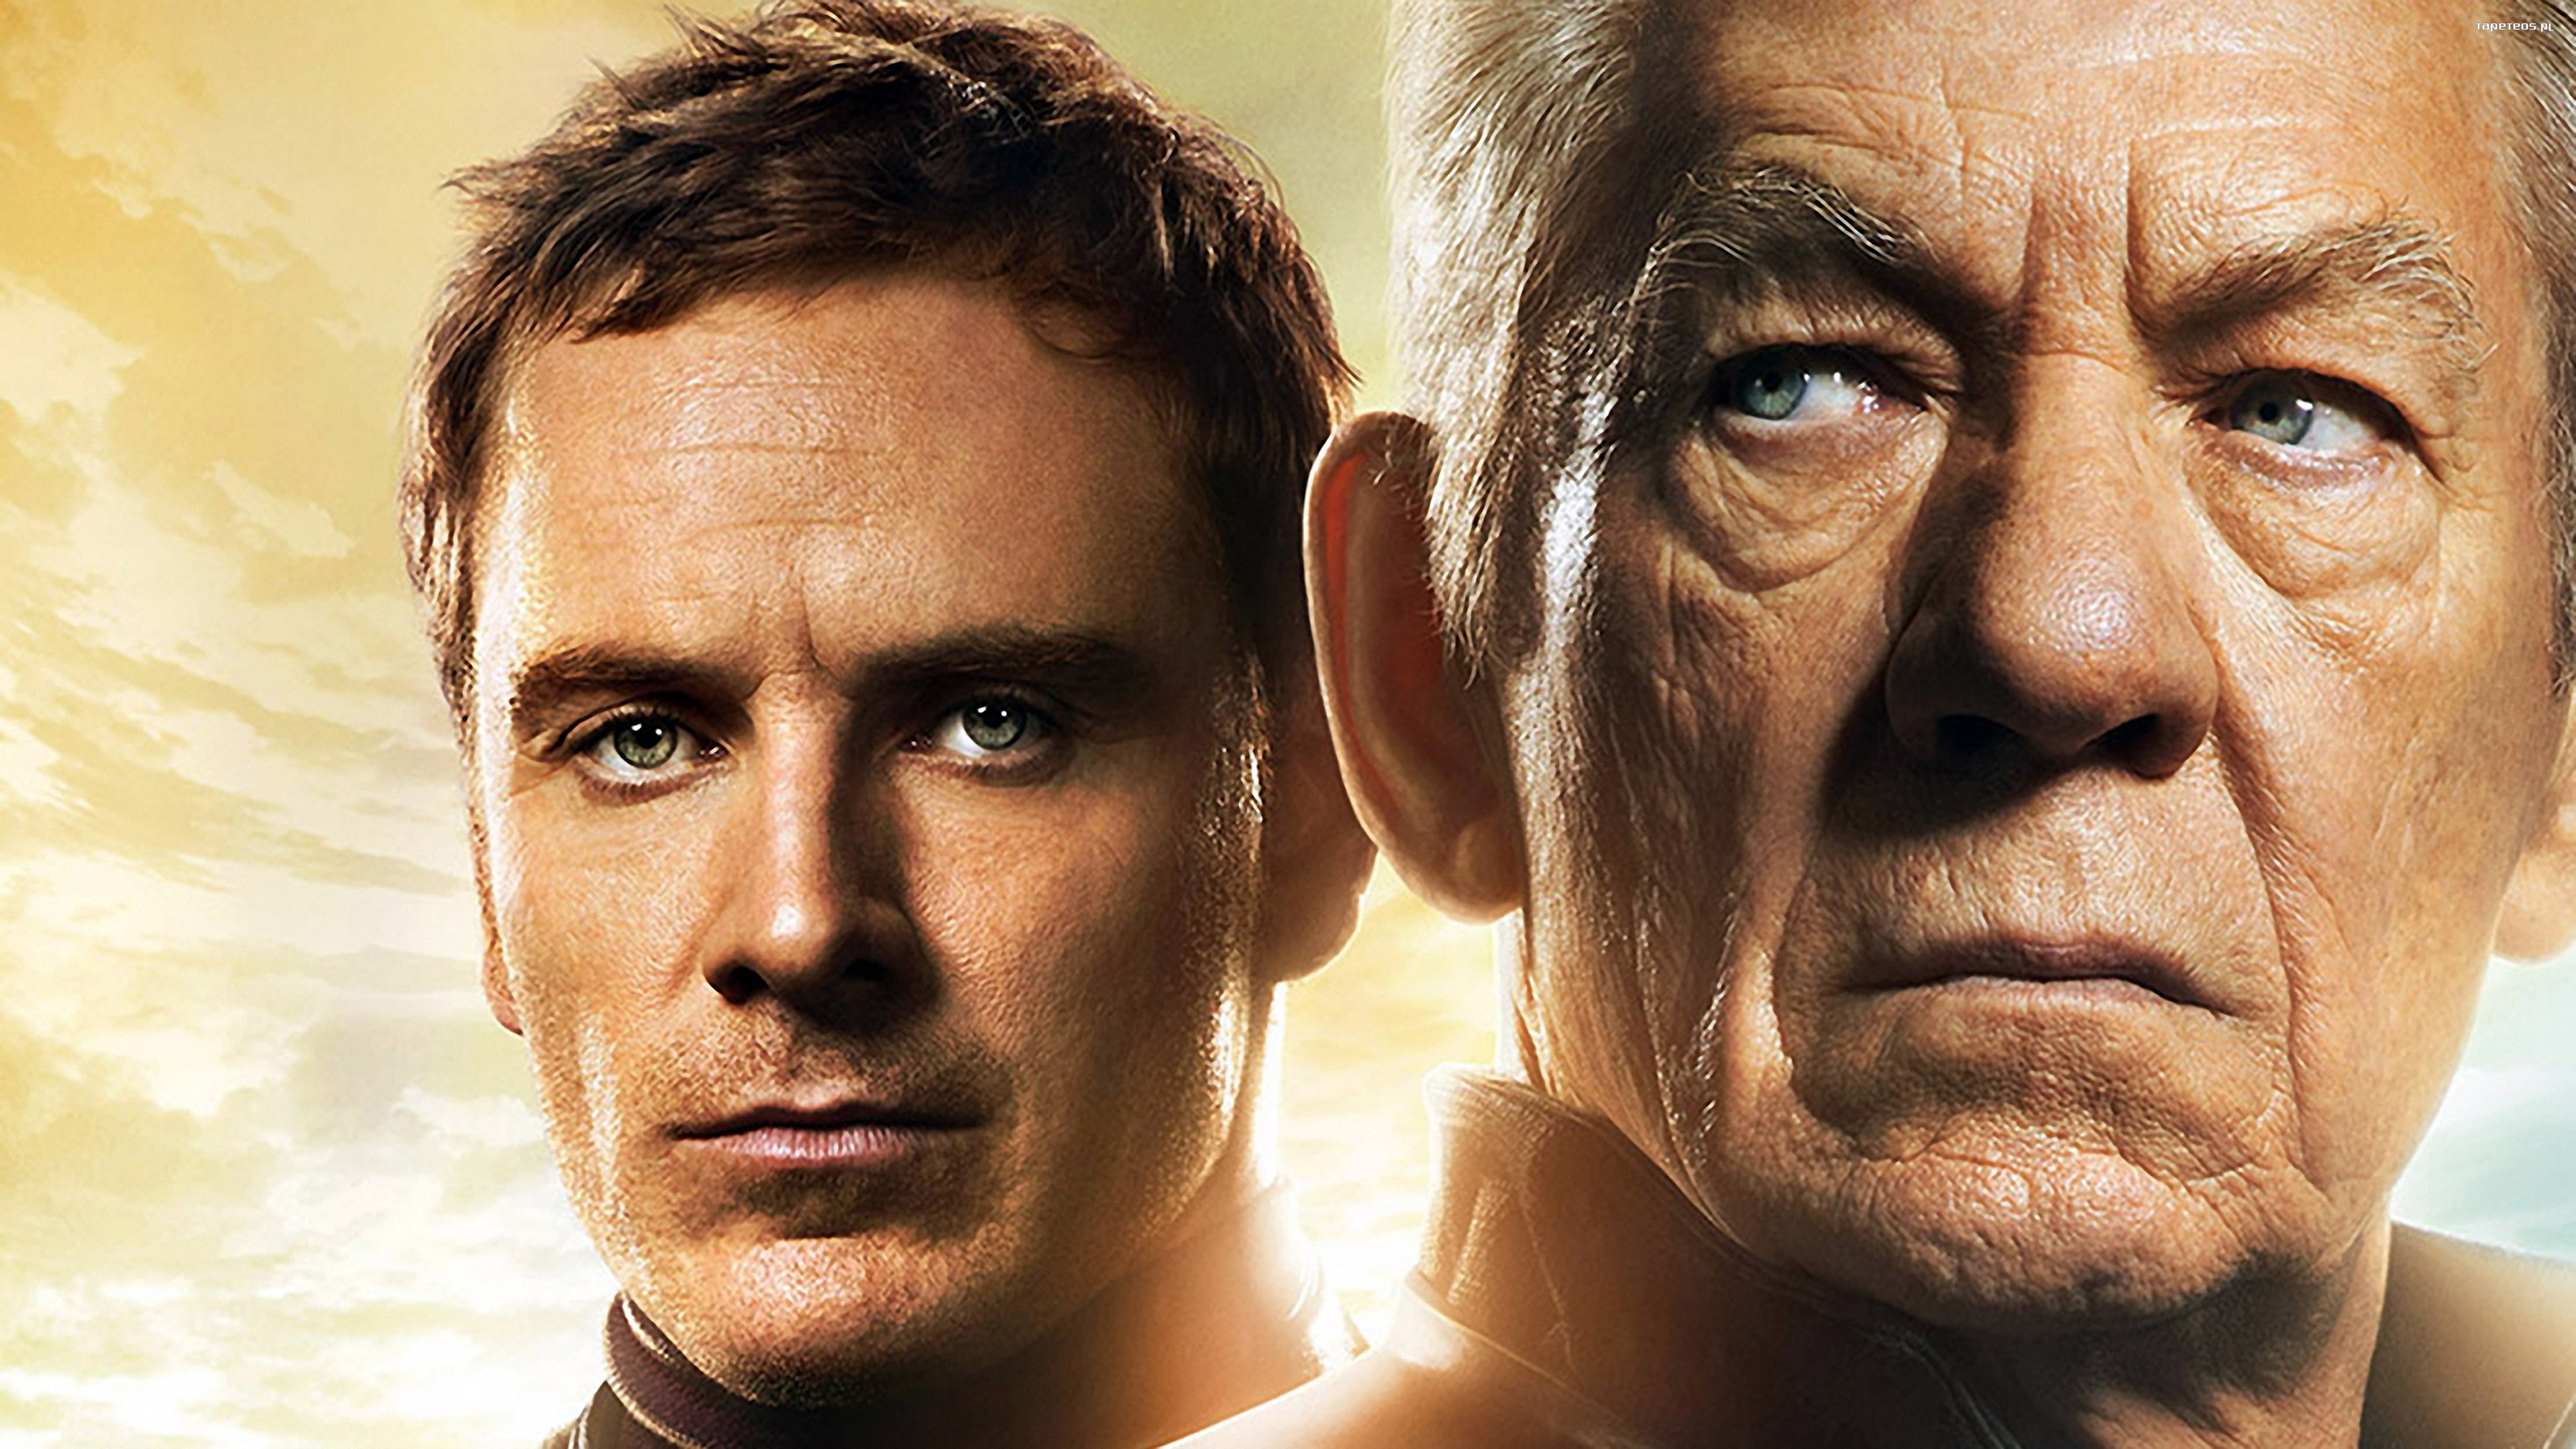 X-Men Days of Future Past 013 Magneto